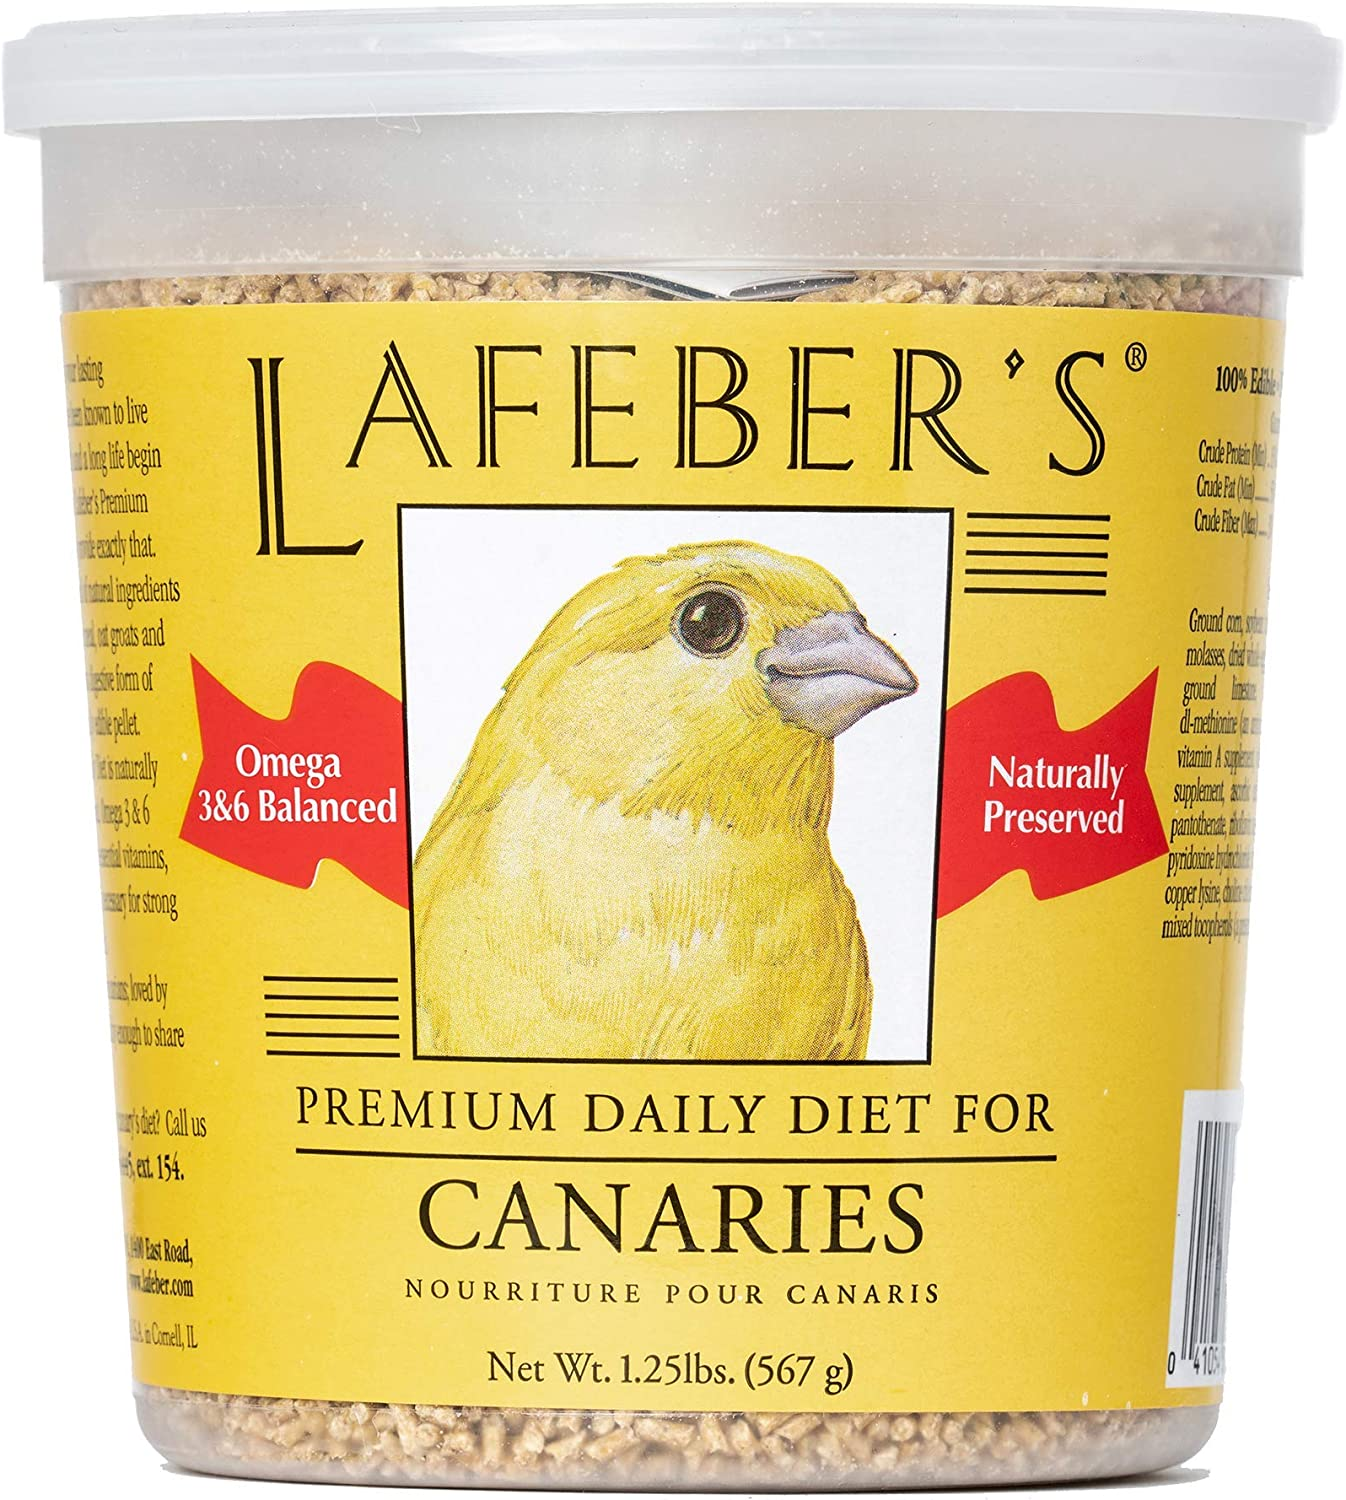 LAFEBER'S Premium Daily Diet or Gourmet Fruit Pellets Pet Bird Food, Made with Non-GMO and Human-Grade Ingredients, for Canaries